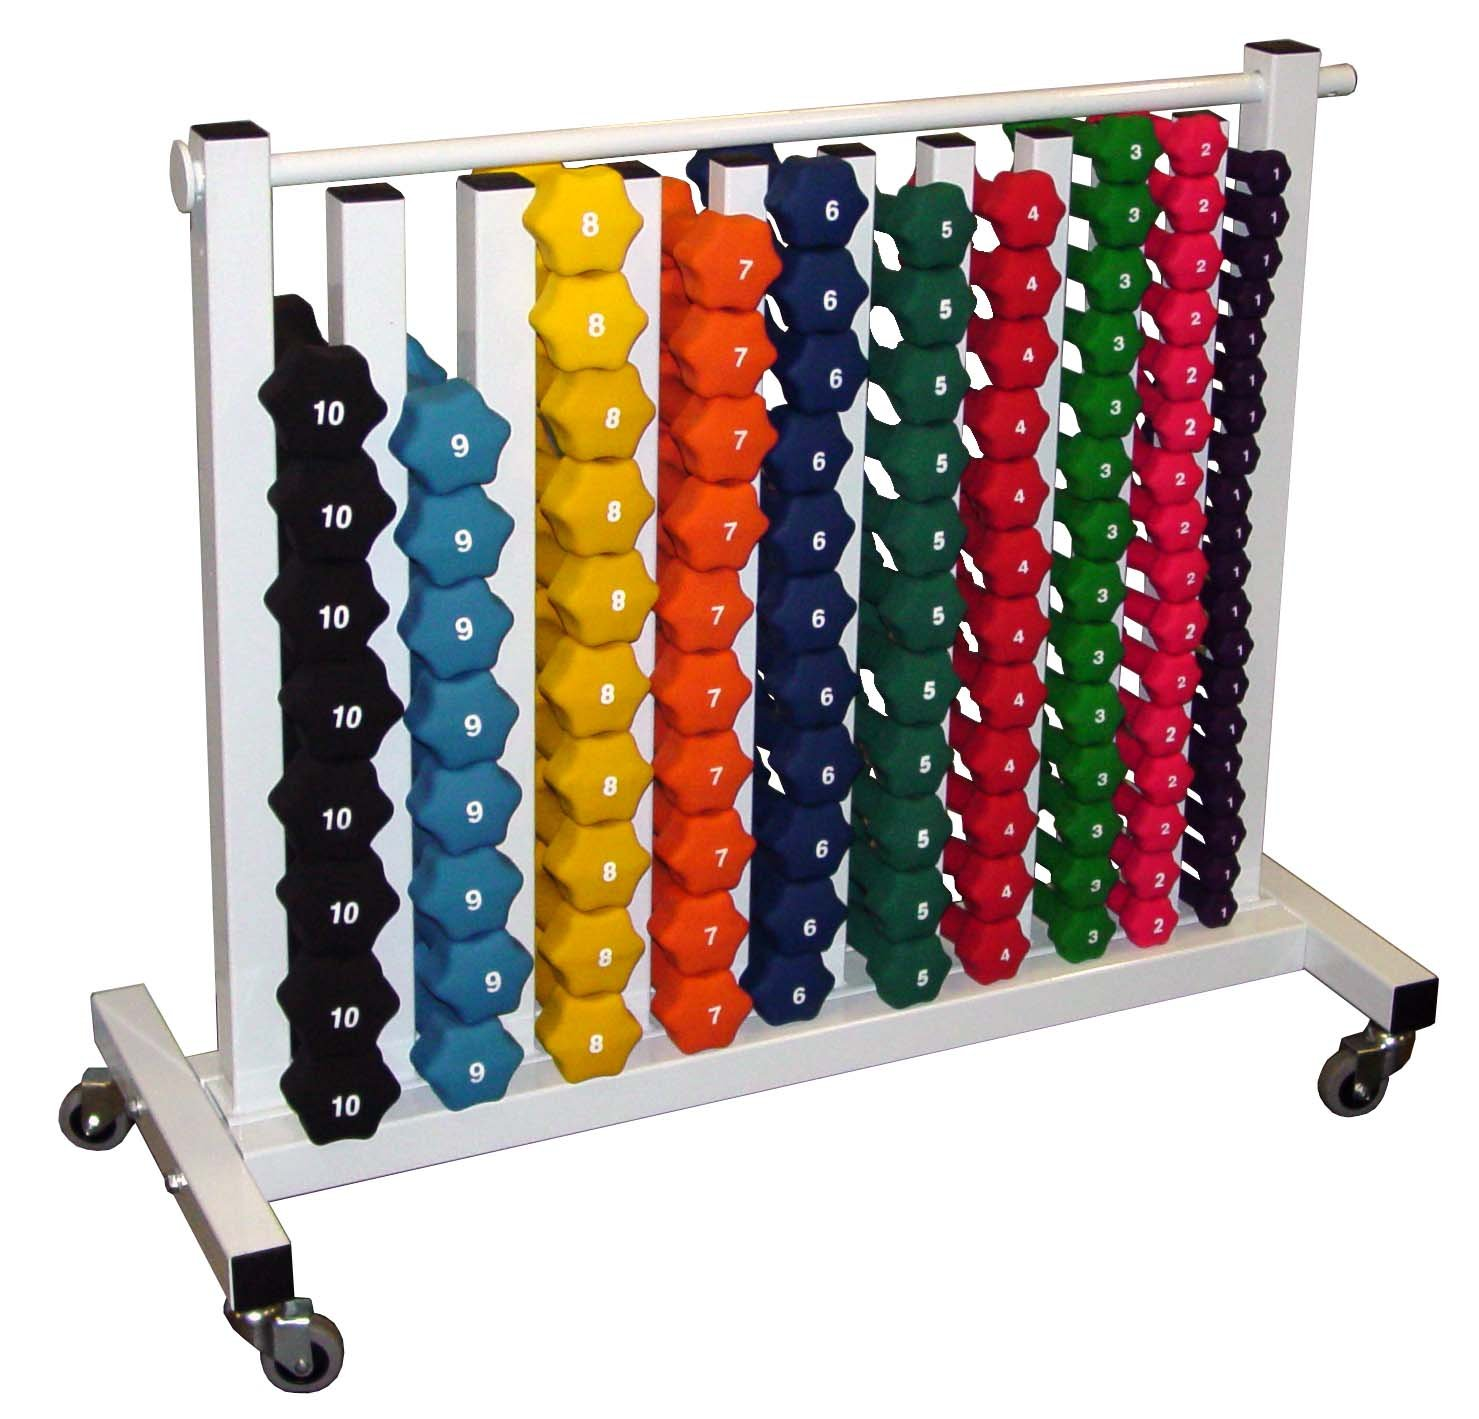 Neoprene Dumbbell Set- 88 Weights w/ Free Rack (on 4 caster wheels) by Ader Sporting Goods